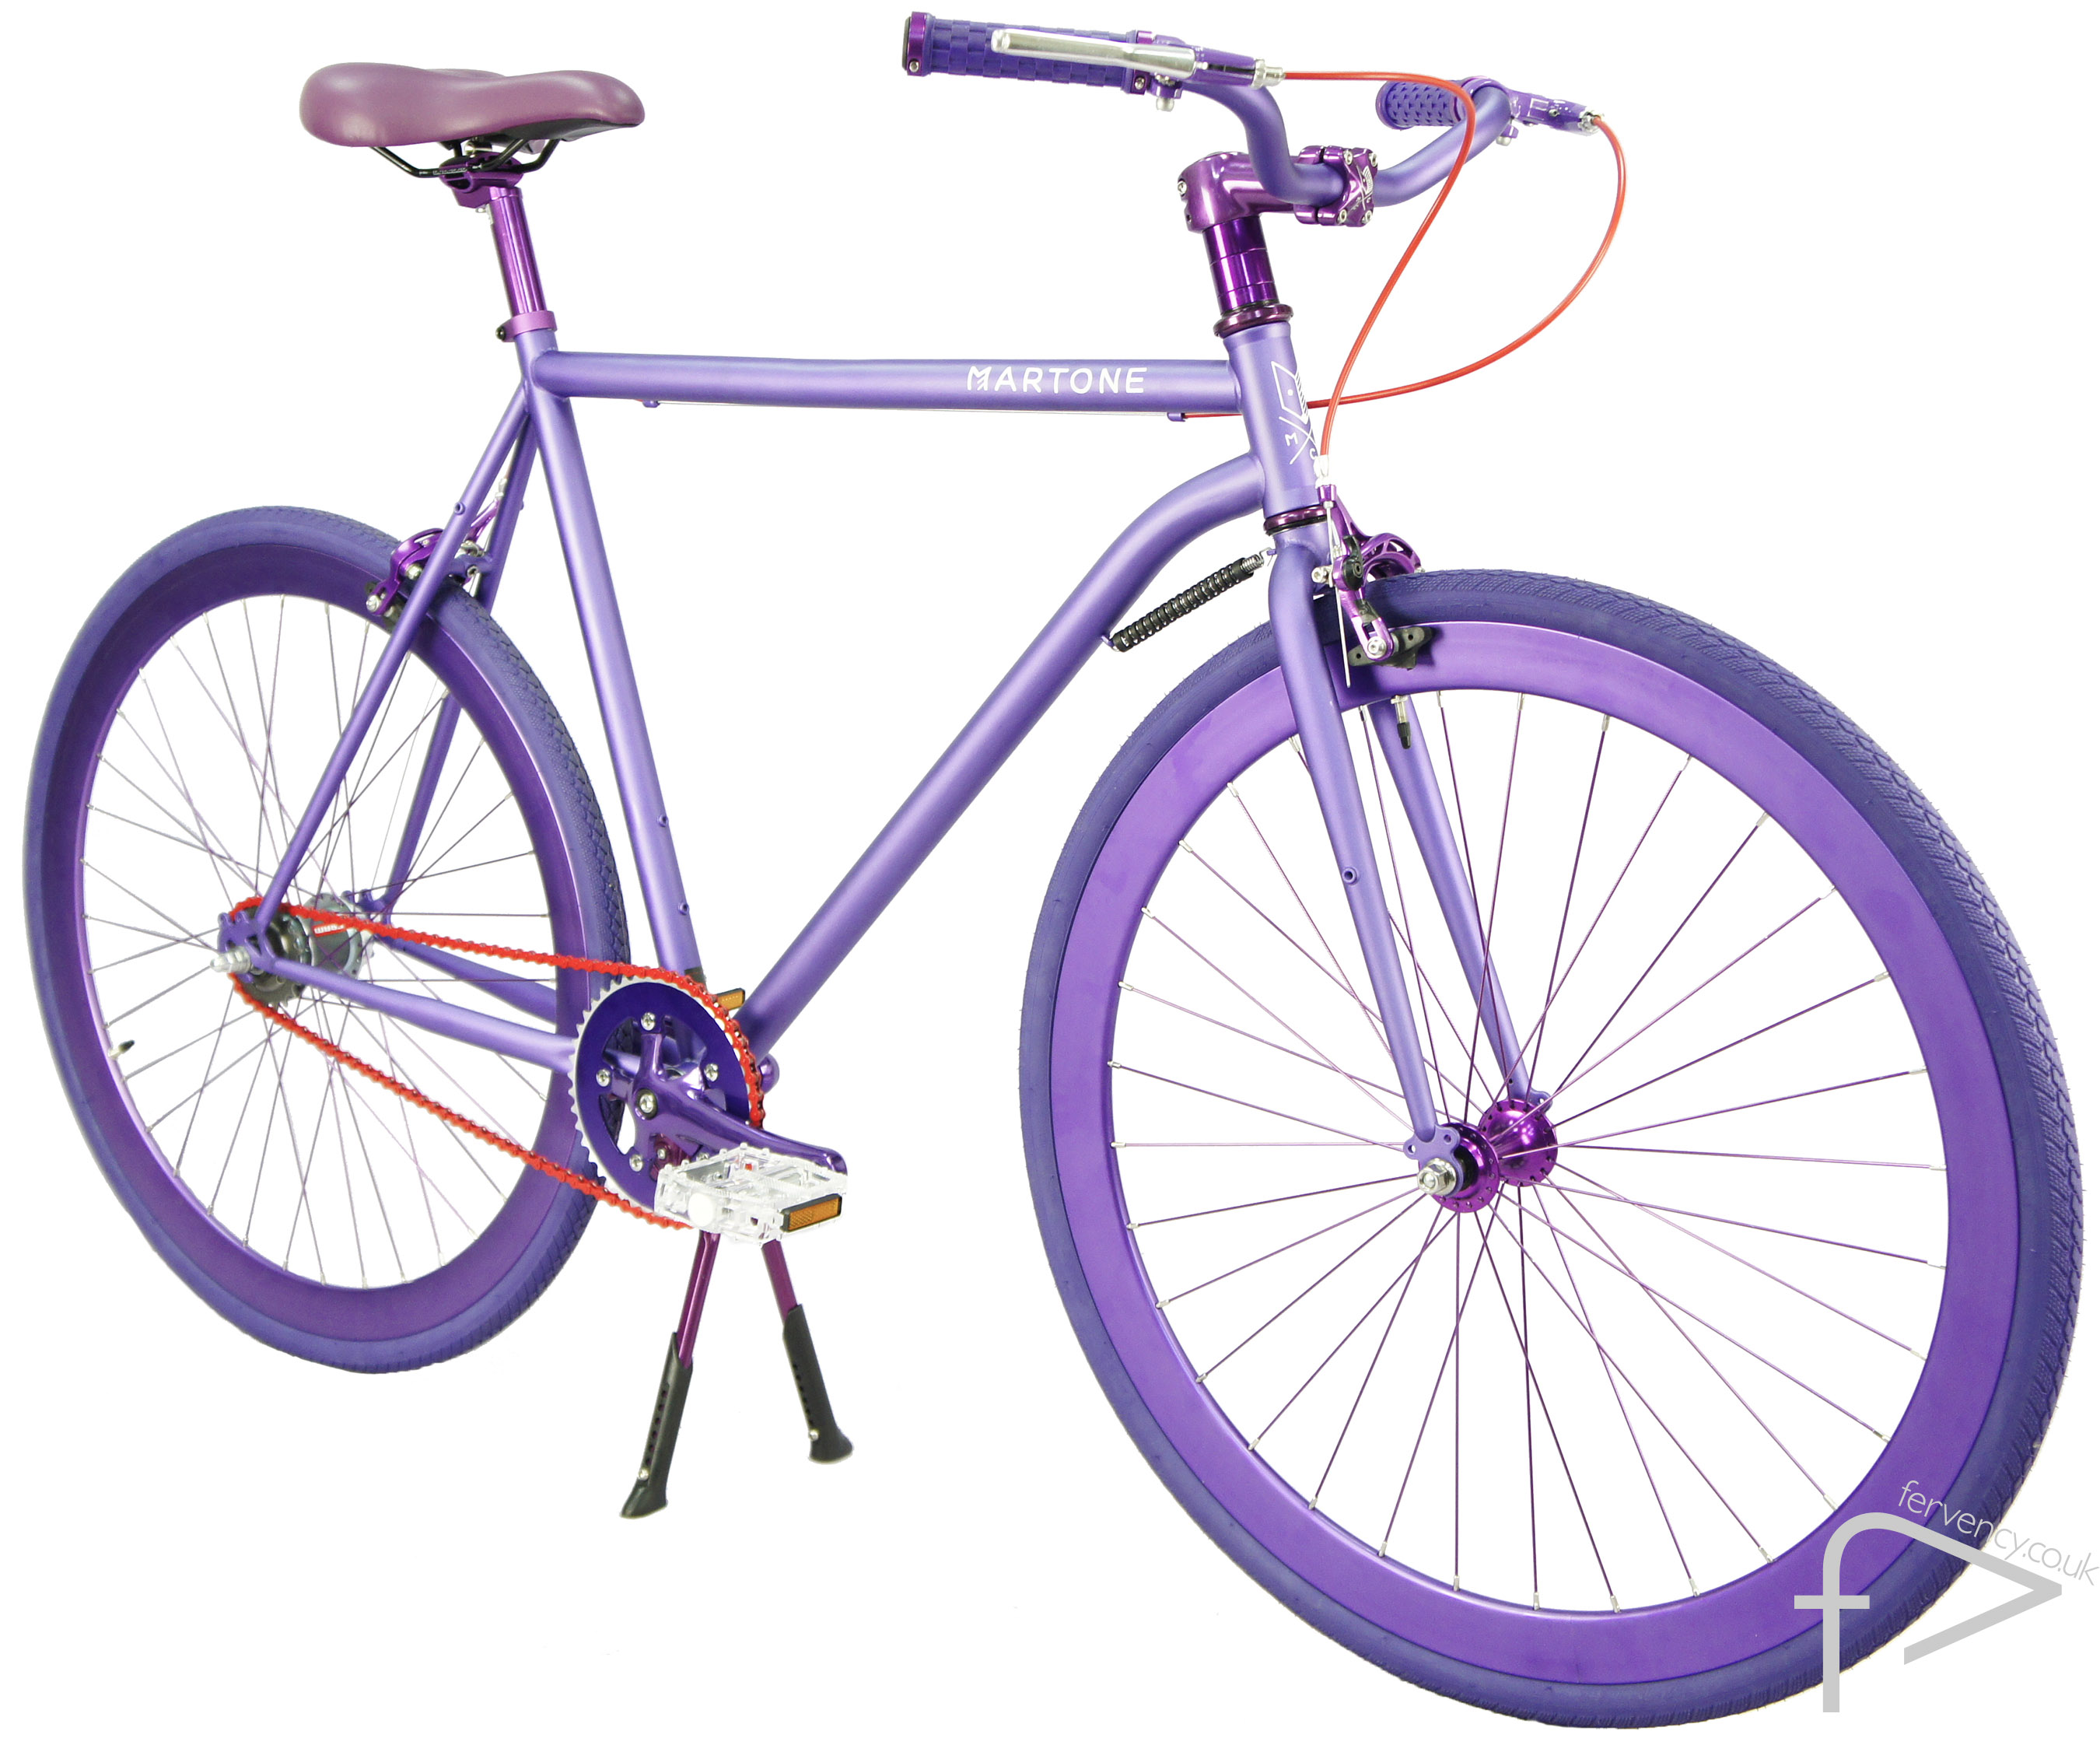 La Jolla Purple Bike UK